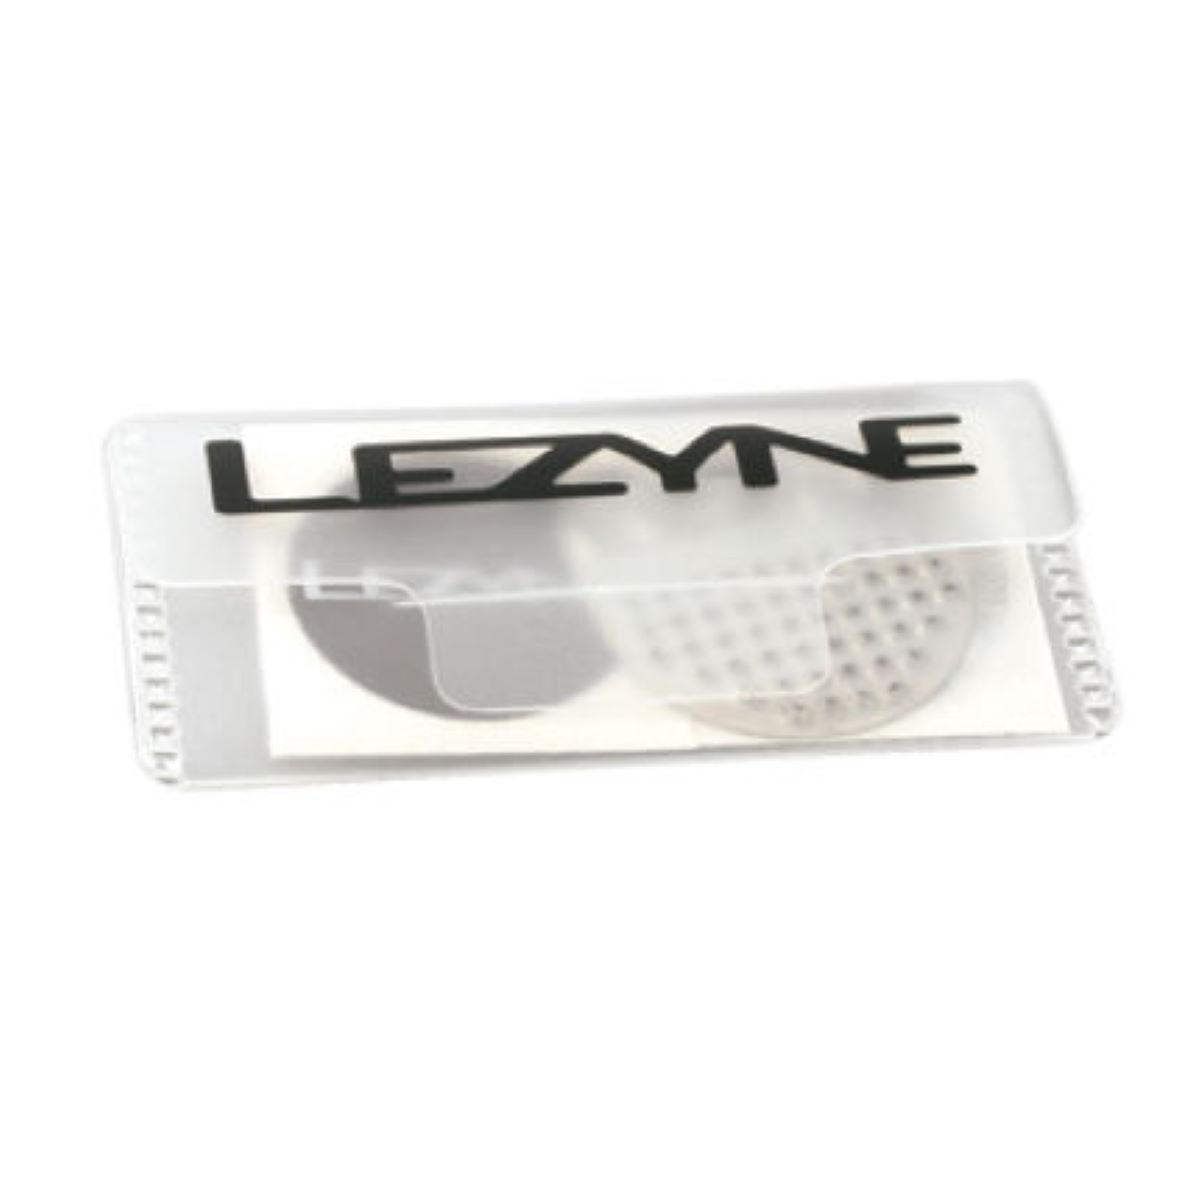 Lezyne Smart Puncture Repair Kit